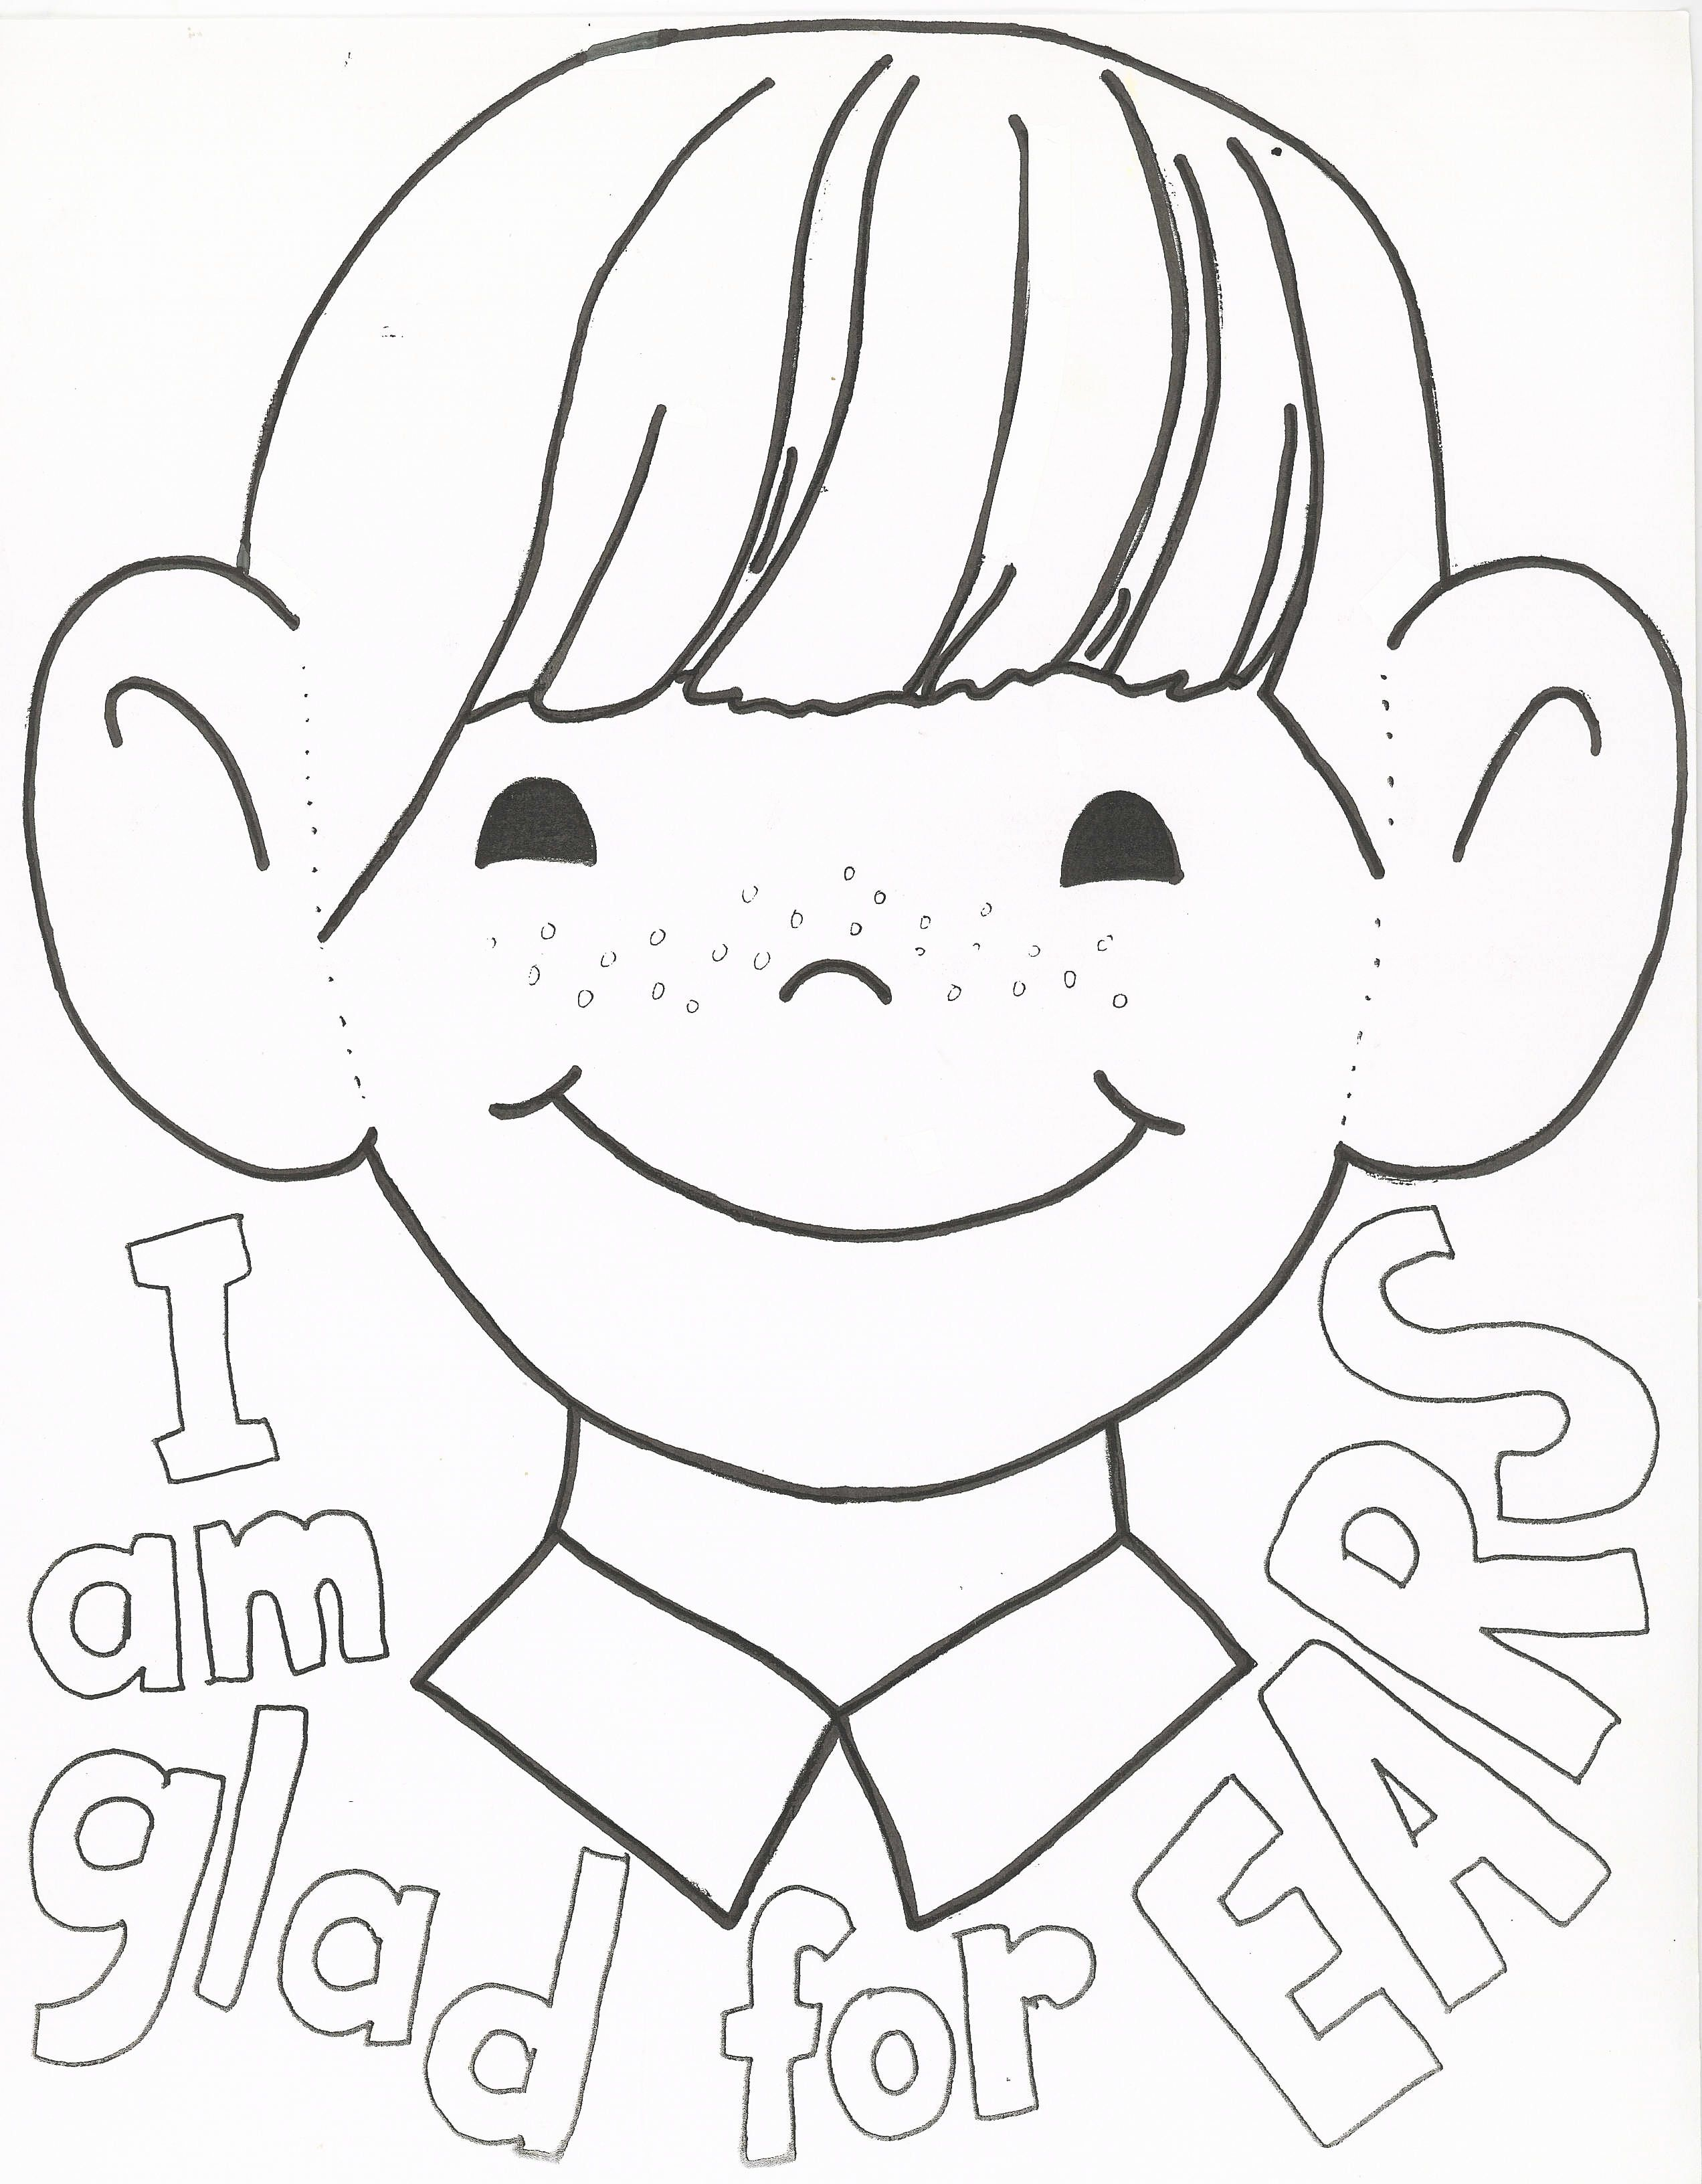 ears coloring pages - photo#35